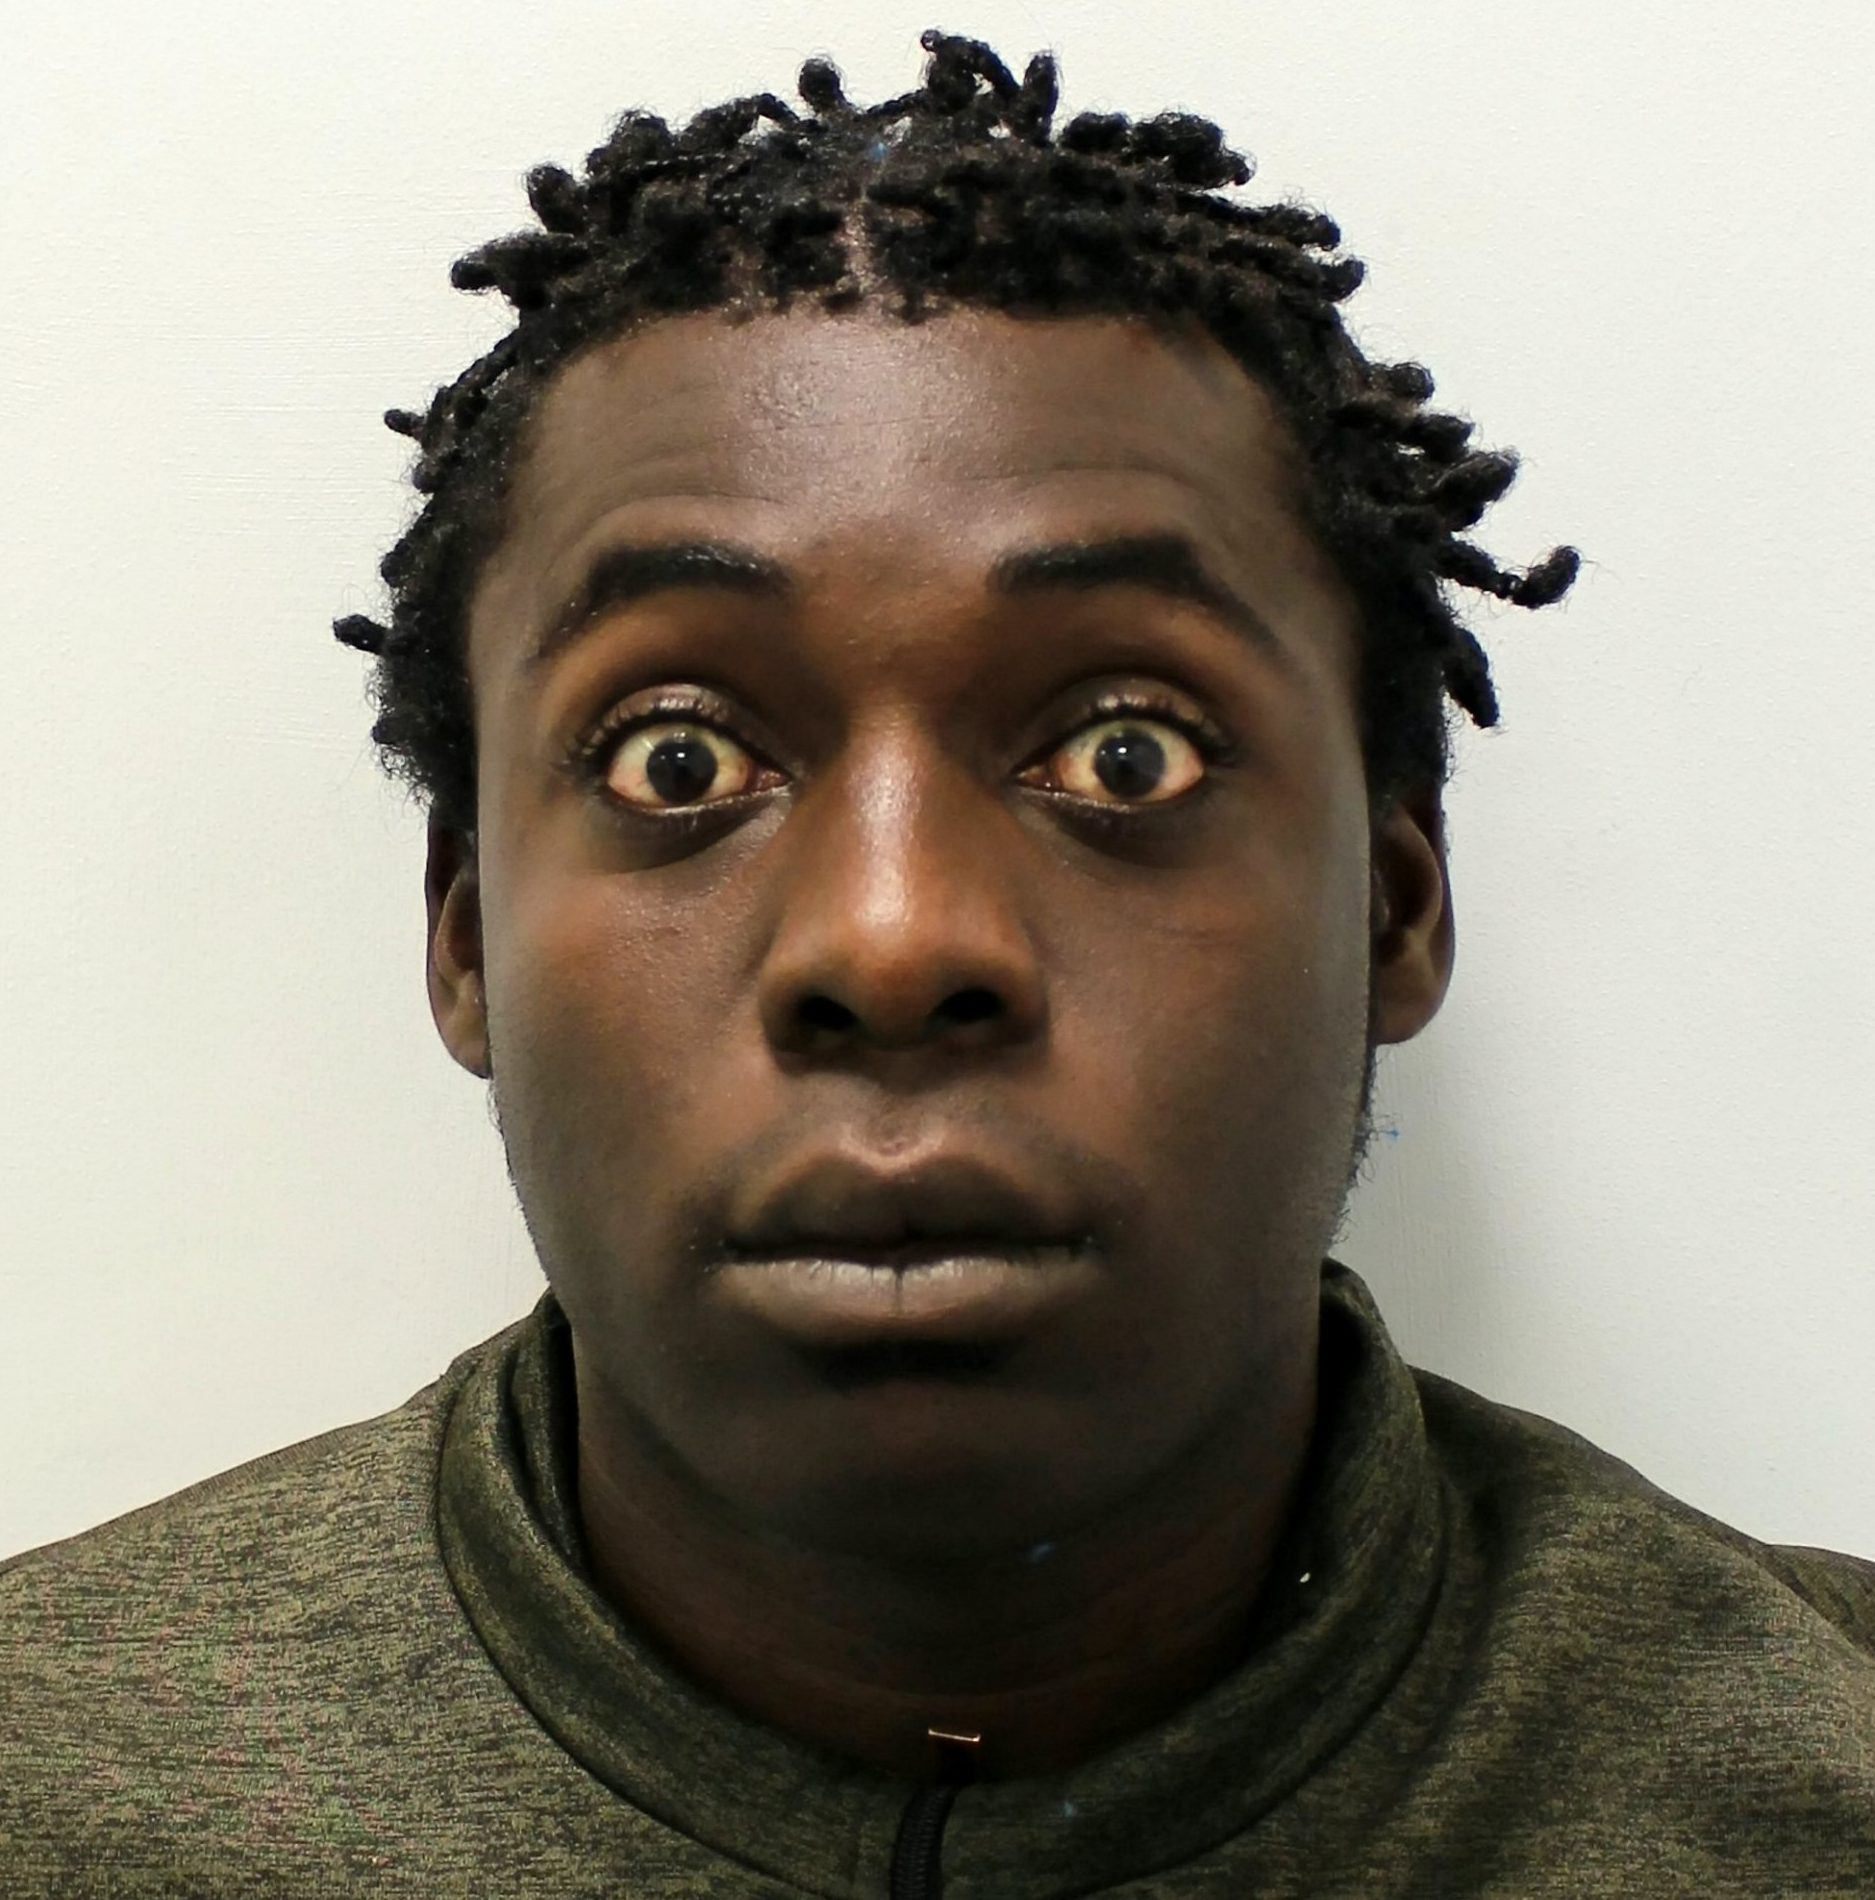 "Mugshot of Manaf Alahassan, 27, who attacked staff at a chicken shop because his food was taking too long. See national news story NNchicken.A hangry customer was jailed for eight months after he attacked staff at a chicken shop because his food was taking too long.Manaf Alahassan and his friend punched the 21-year-old staff member in the face and broke his jaw after they became frustrated by how they had to wait for their food.The homeless 27-year-old threatened staff with a knife before he fled the scene with his 20-year-old accomplice in Croydon, south London.DC Andy Garland, from Croydon CID, said:"" Attacks like this on people in their place of work are totally unacceptable."